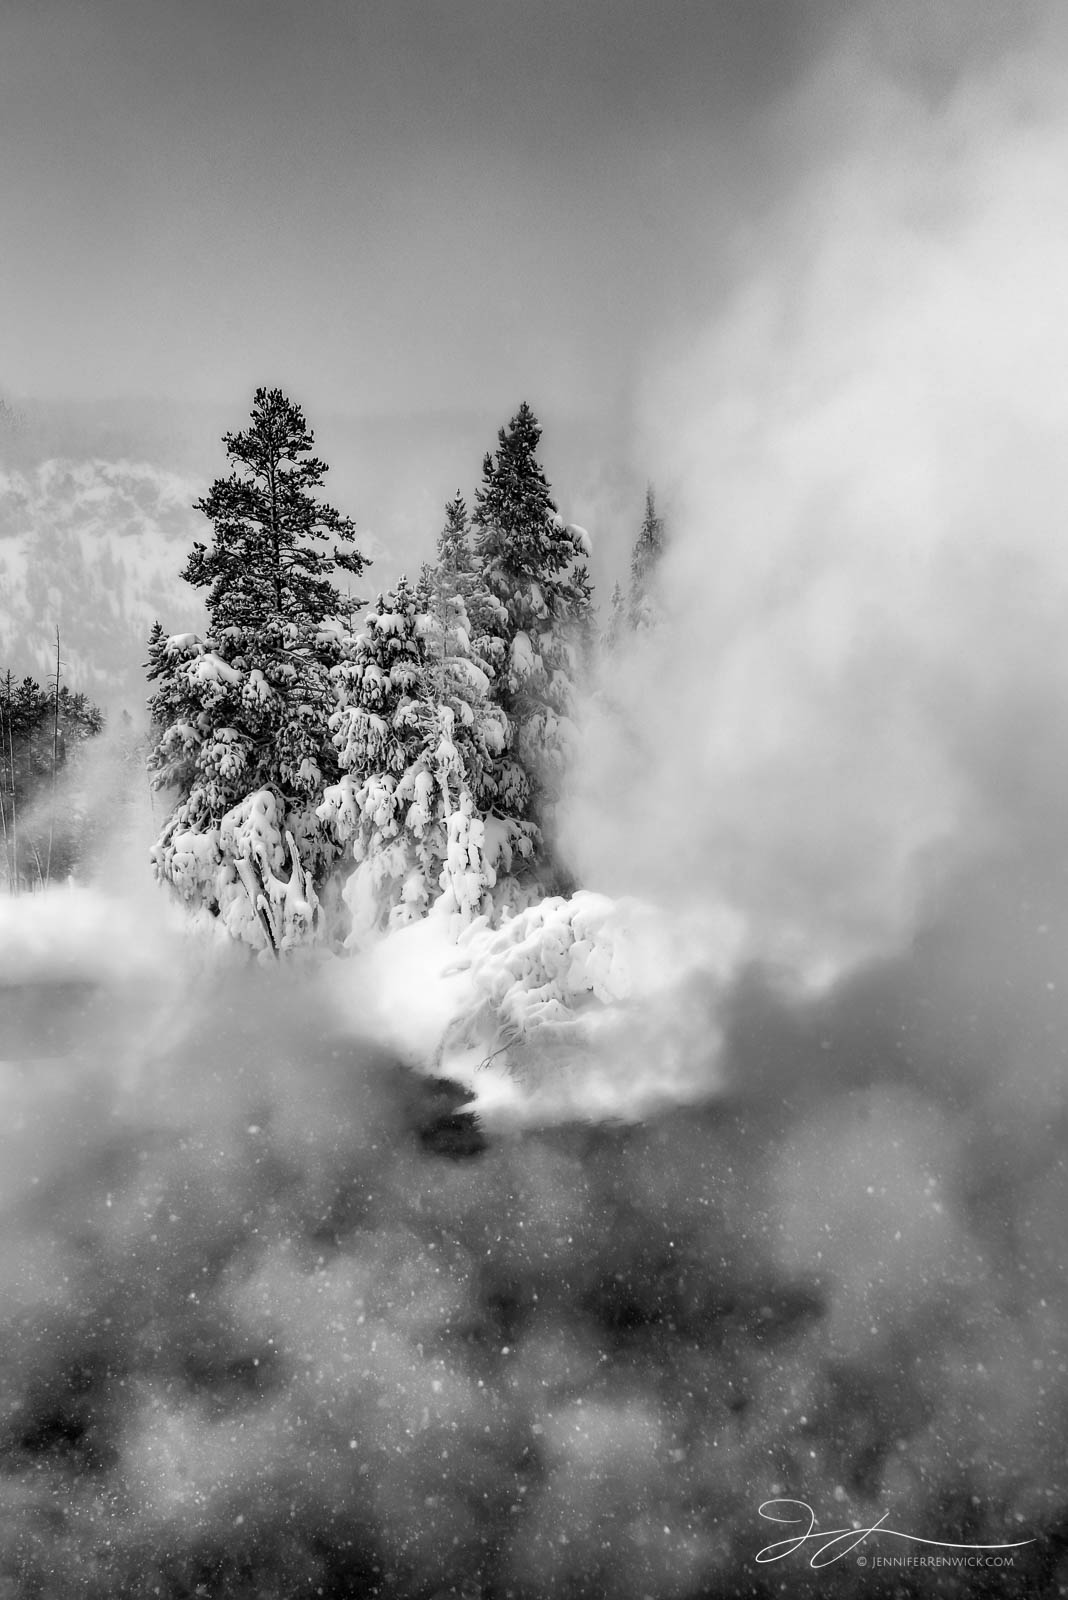 Yellowstone national park, winter, Wyoming, trees, thermal feature, snow, hot spring, Upper Geyser Basin, monochrome, black and white, landscape, photo